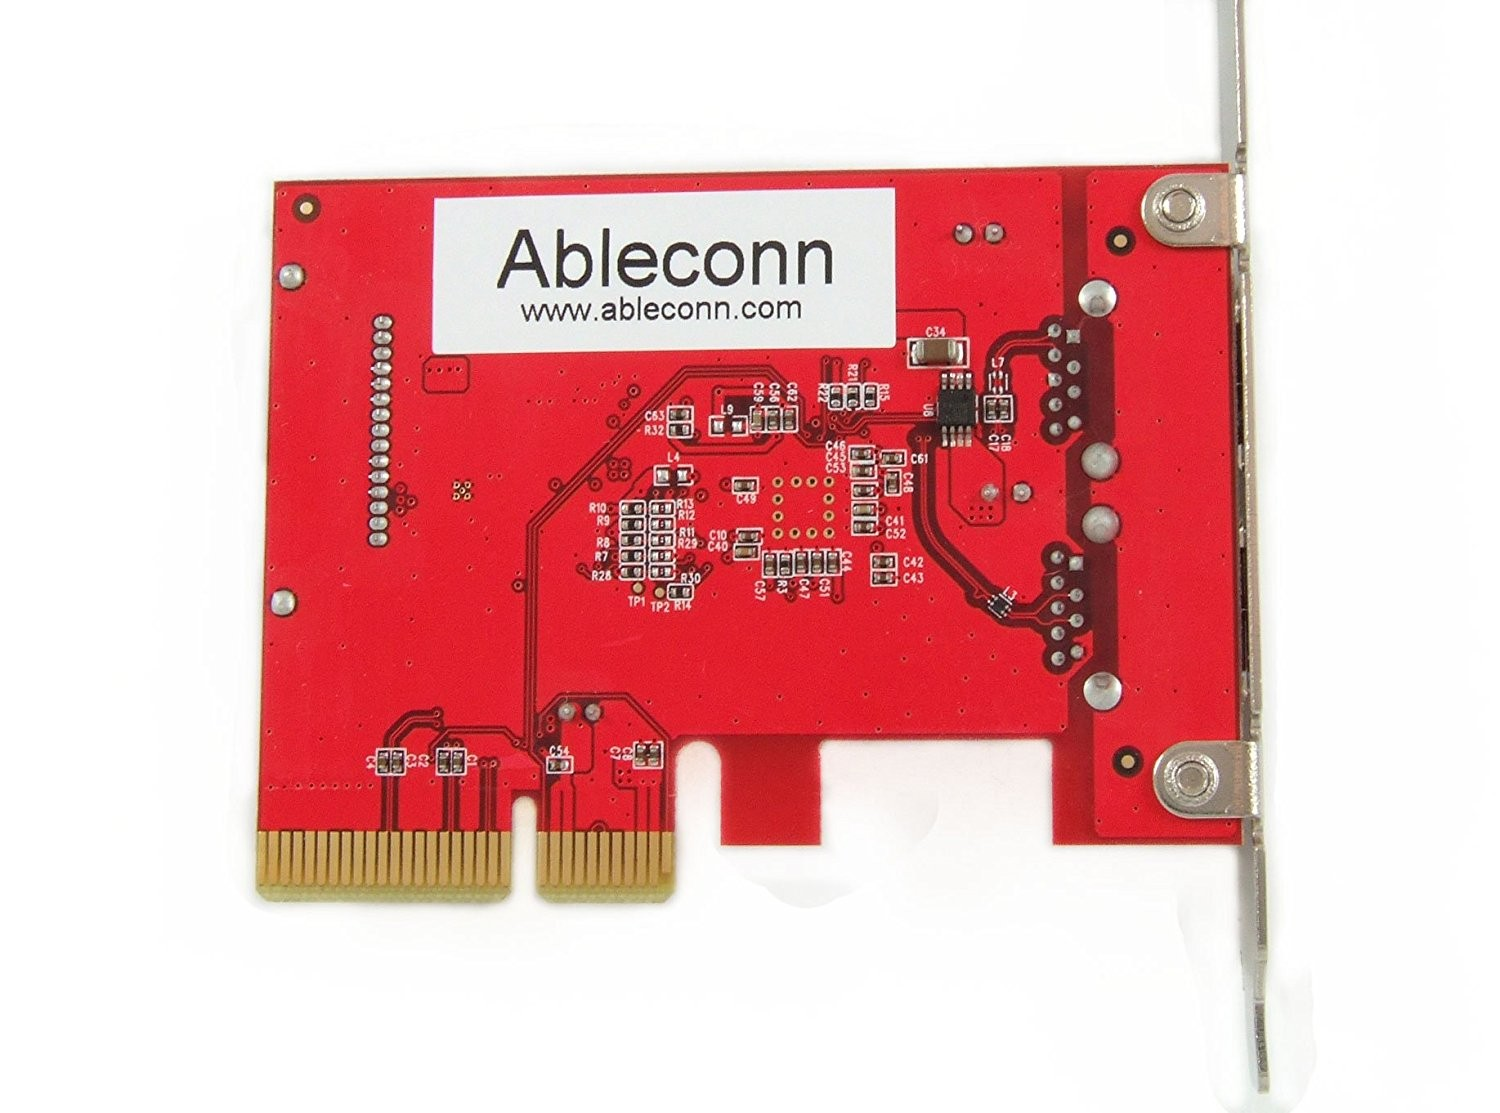 Ableconn USB 3.1 Gen 2 (10 Gbps) 2-Port Type-A PCI Express (PCIe) x4 Host Adapter Card For Mac Pro, PUSB31P2A